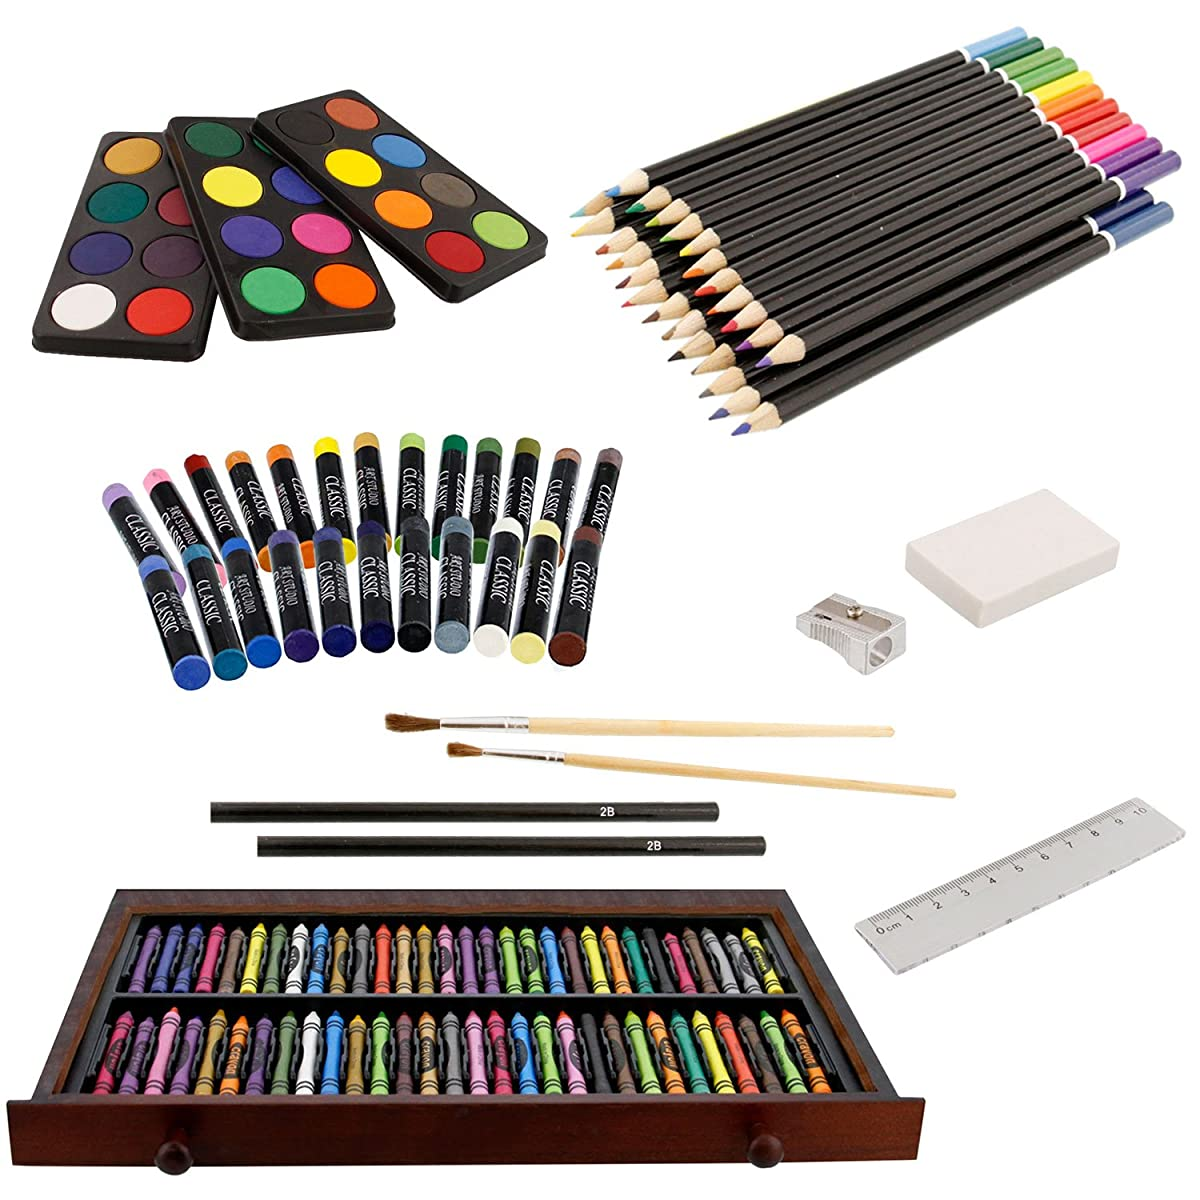 US Art Supply 142 Piece Mega Art Creativity Set in Wood Box Set, Wood Desk Easel and BONUS 20 additional pieces